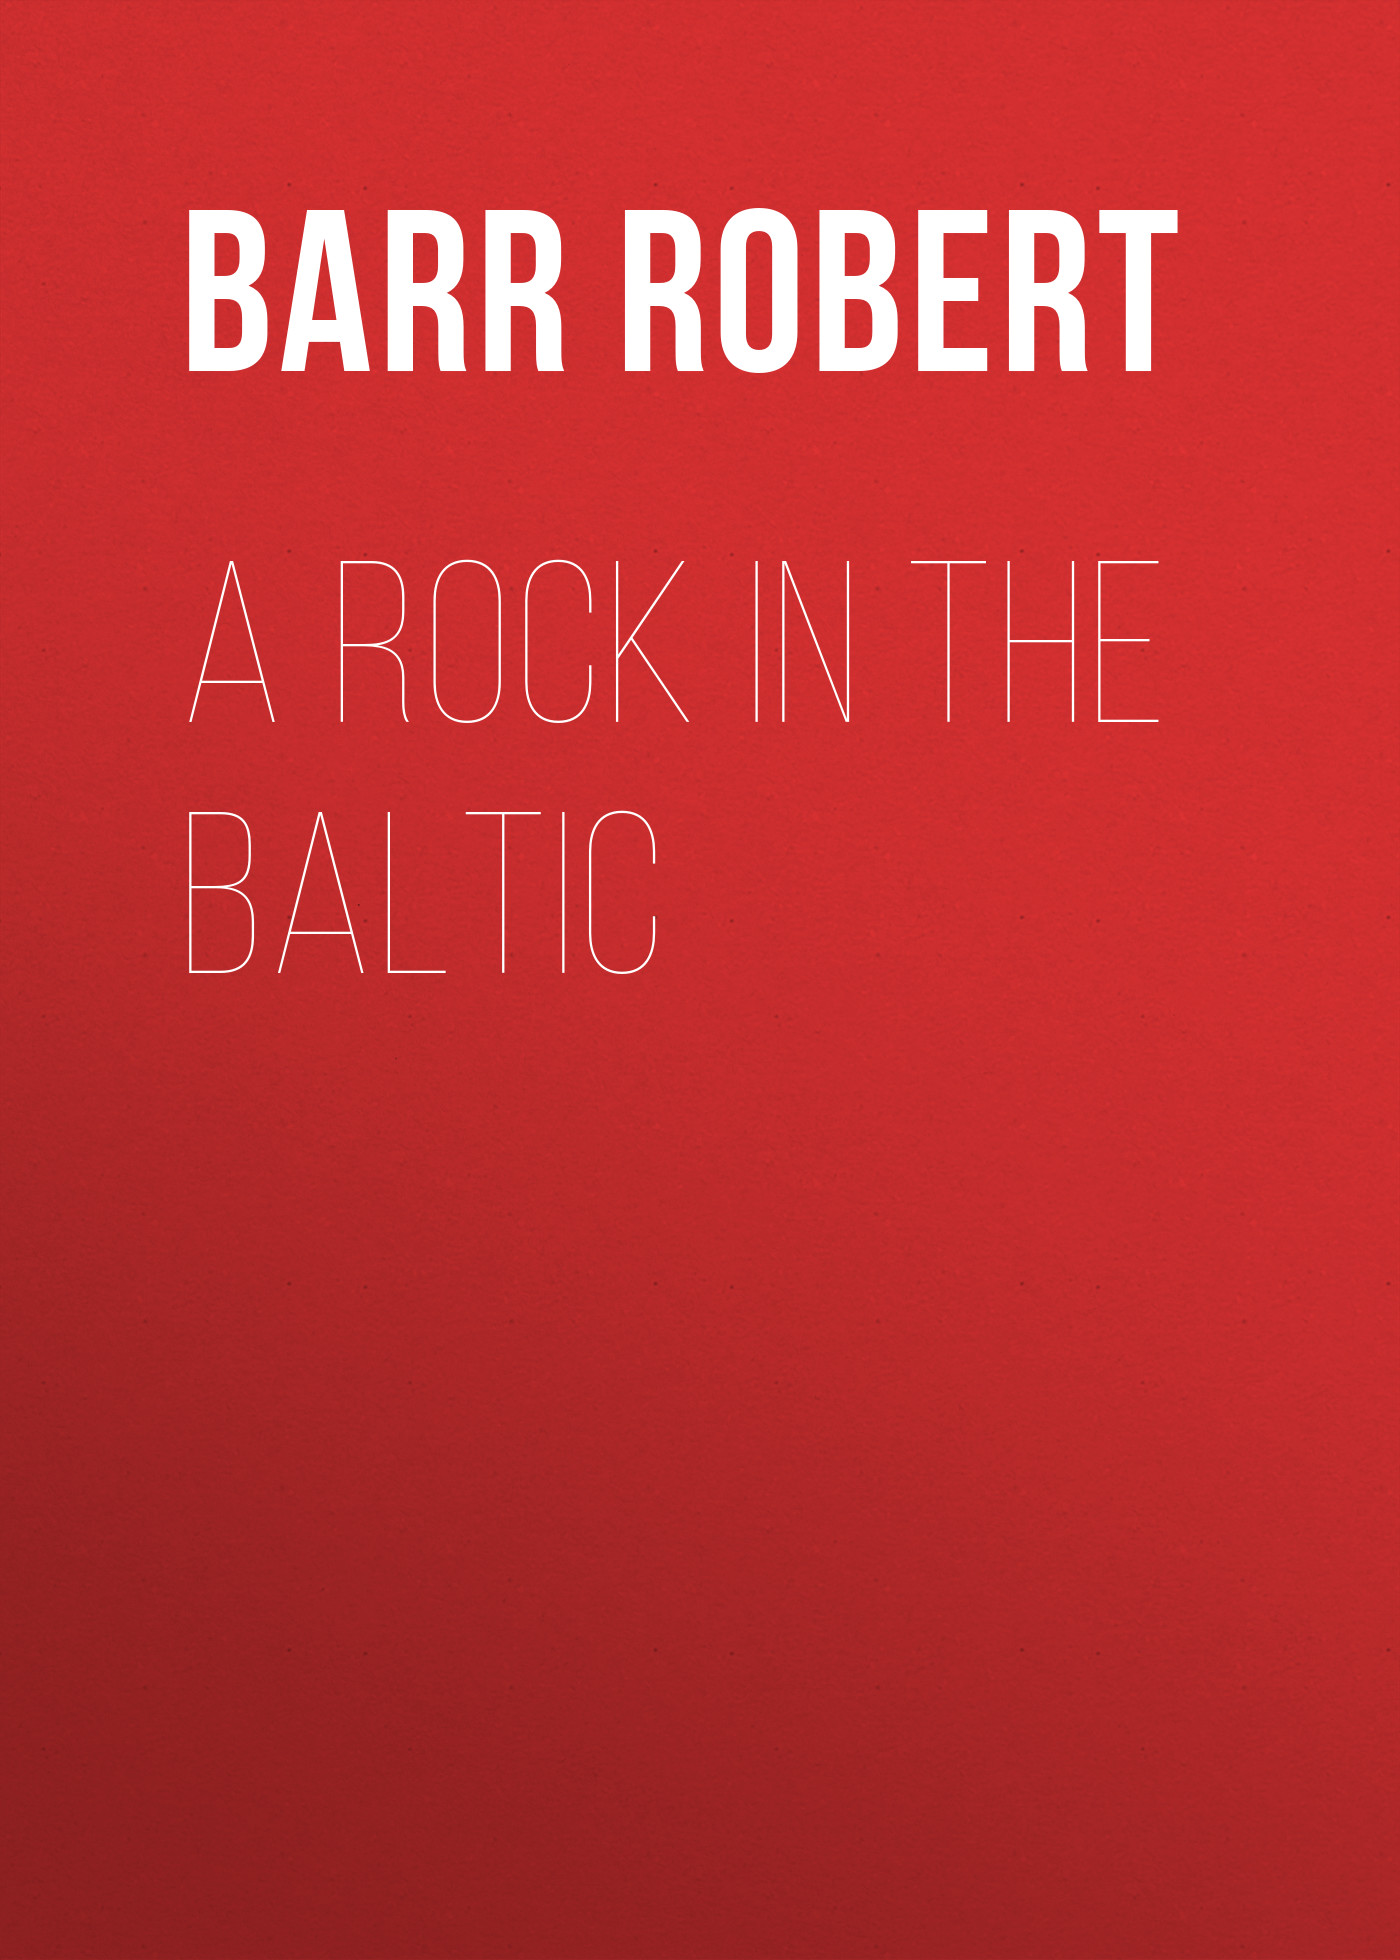 Barr Robert A Rock in the Baltic